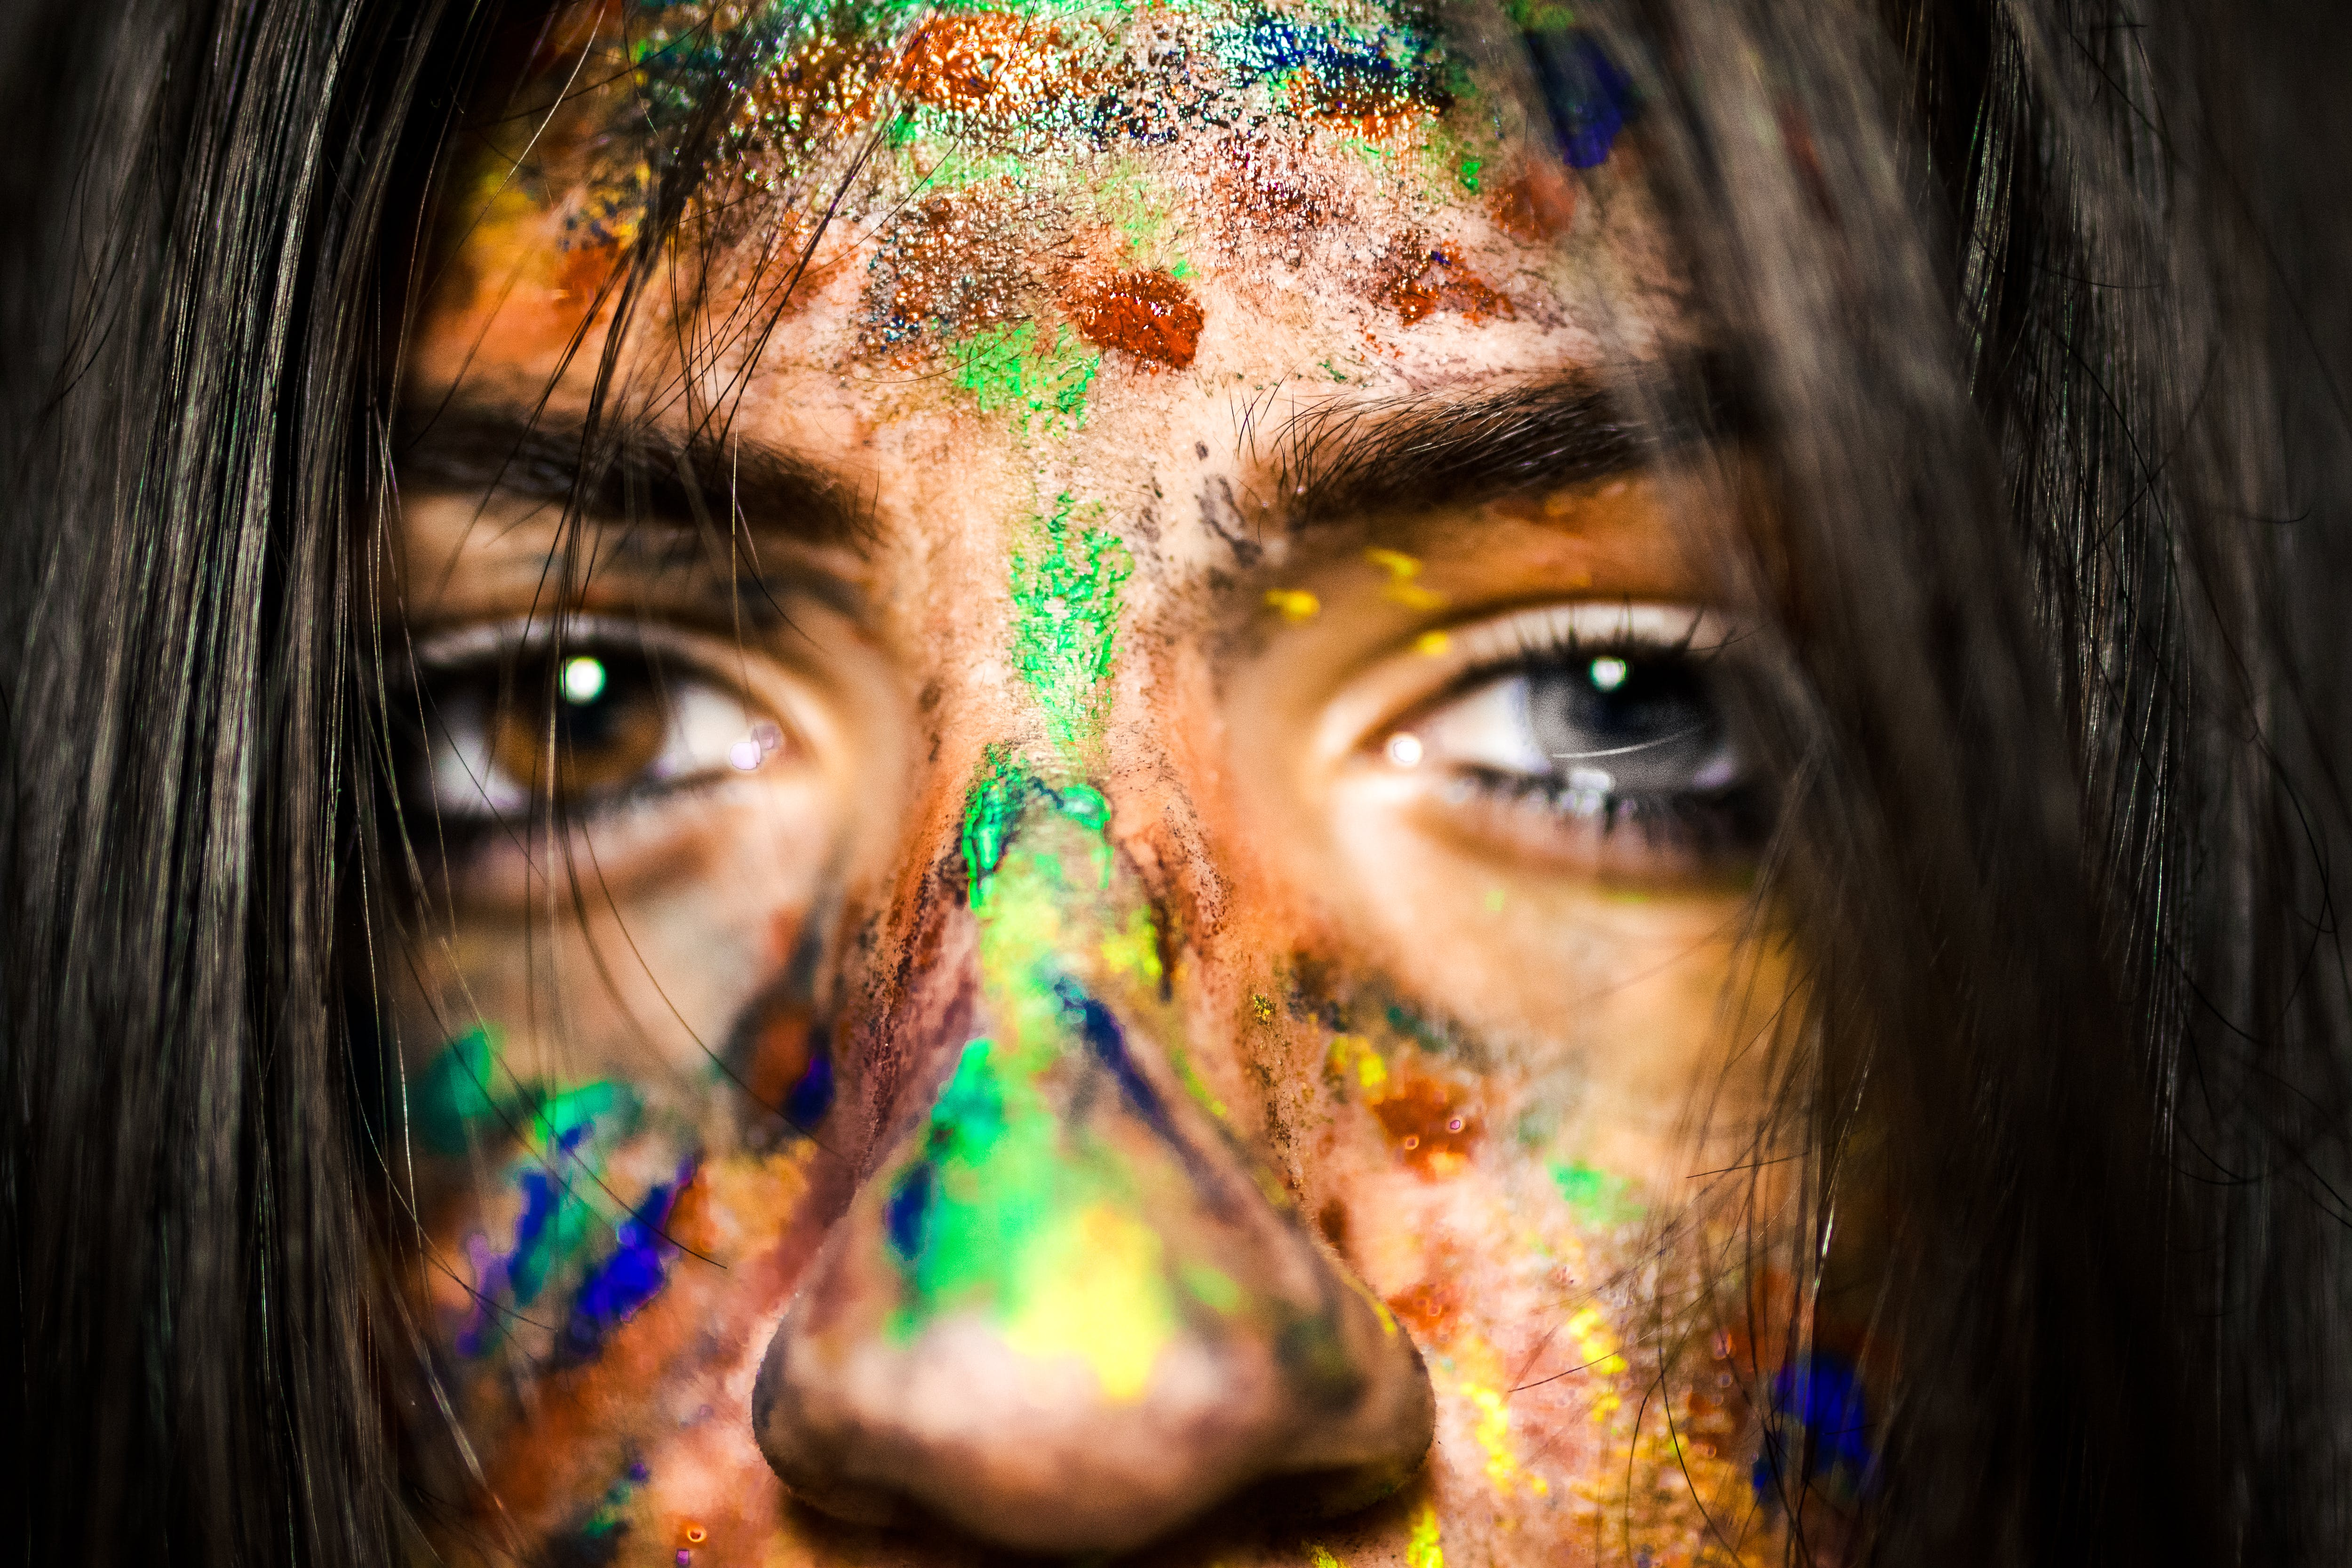 Close-up Photo of Woman With Paint on Face